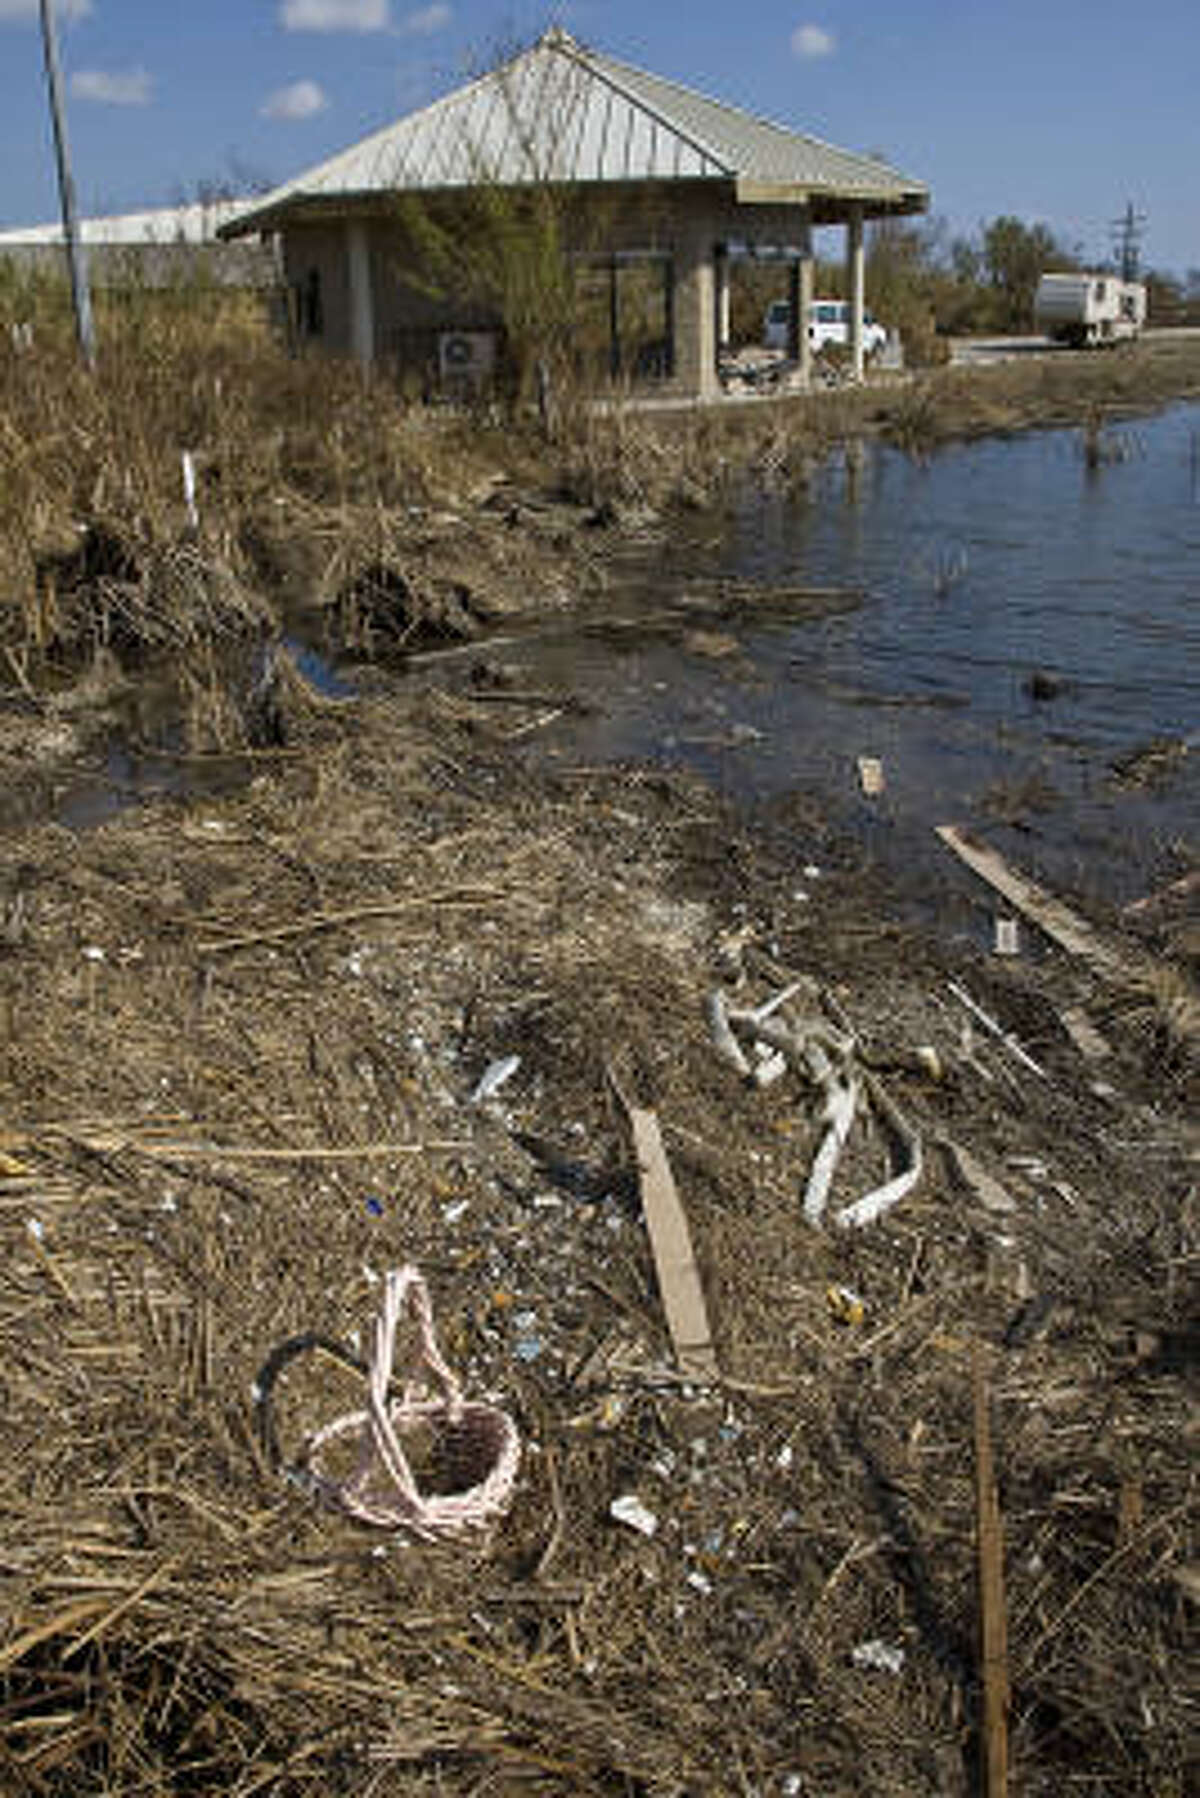 An Easter basket and other debris deposited by Hurricane Ike rests in the pond outside the Visitor Center at the Anahuac National Wildlife Refuge. .